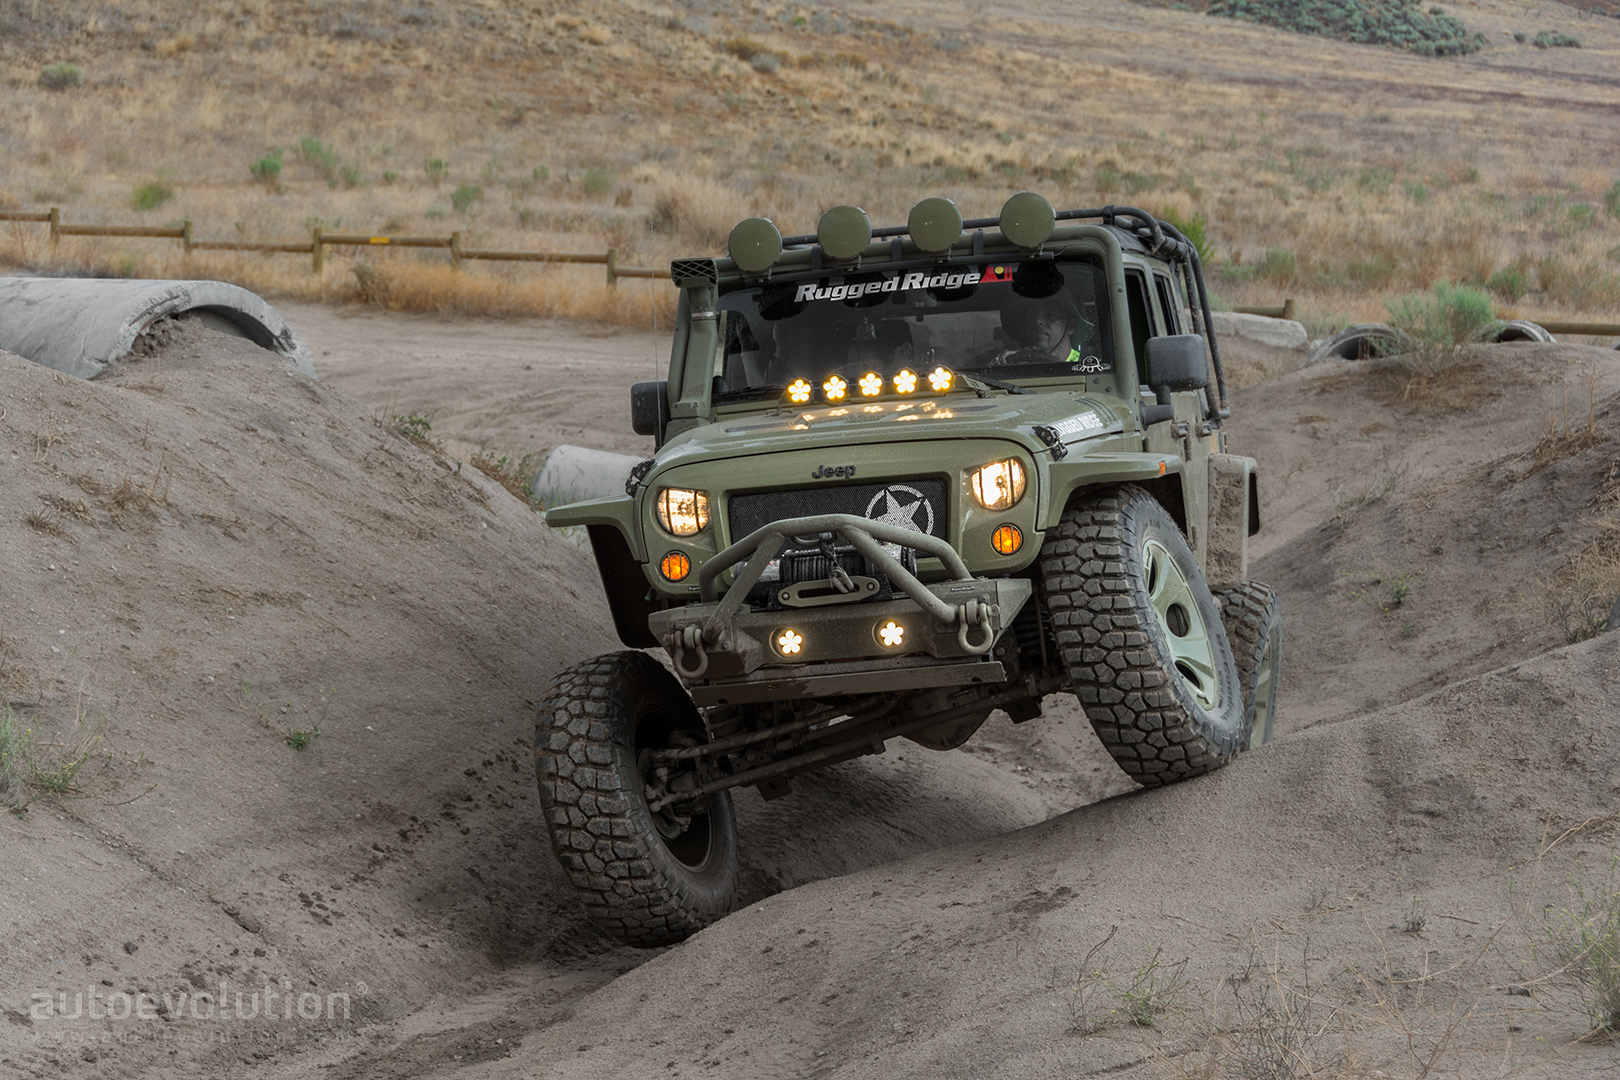 2014 jeep wrangler rubicon by rugged ridge wallpapers straight off the path autoevolution. Black Bedroom Furniture Sets. Home Design Ideas